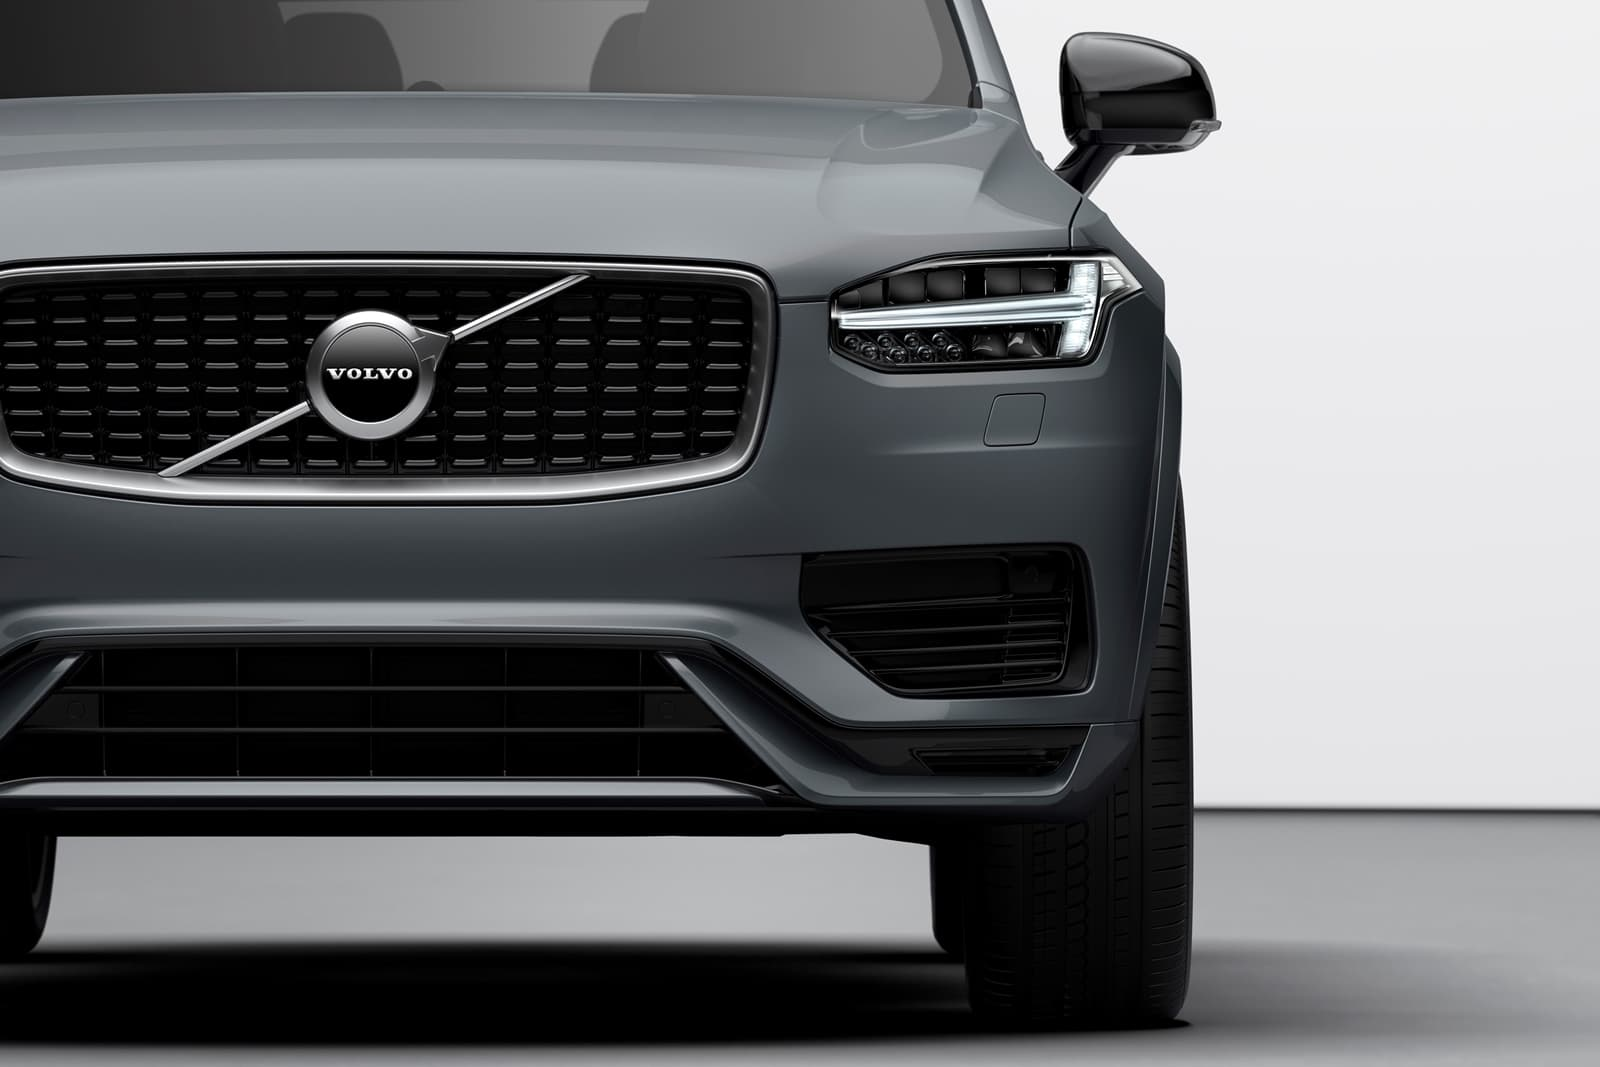 The New Volvo Xc90 R Design T8 Twin Engine In Thunder Grey